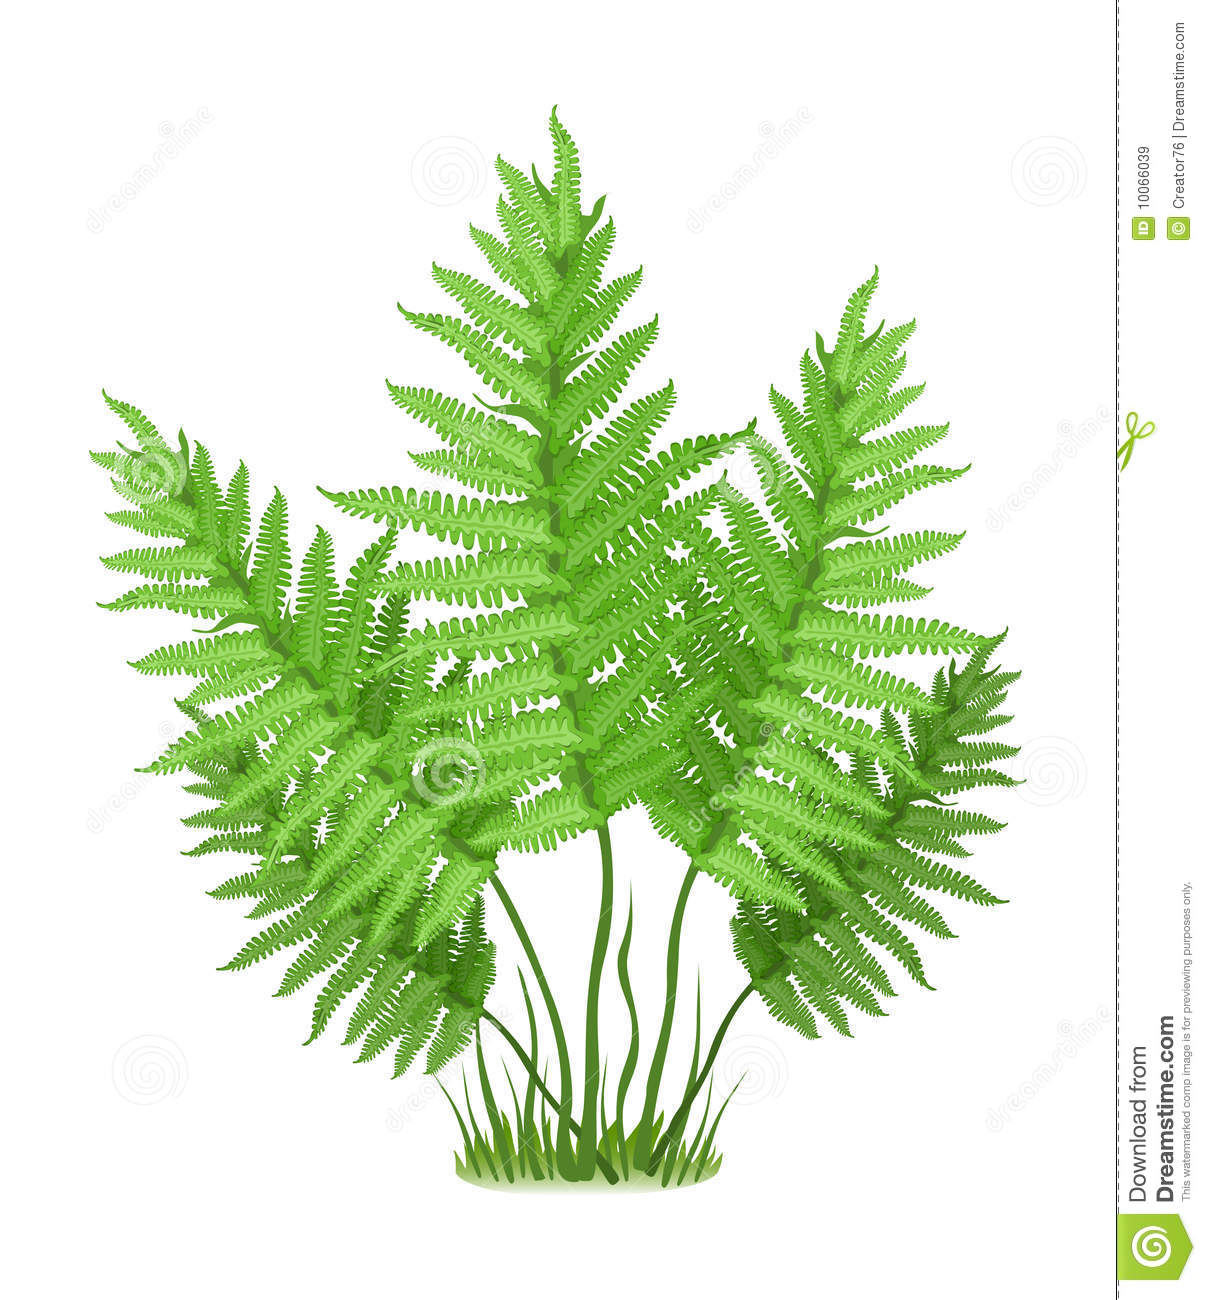 Fern Royalty Free Stock Images.